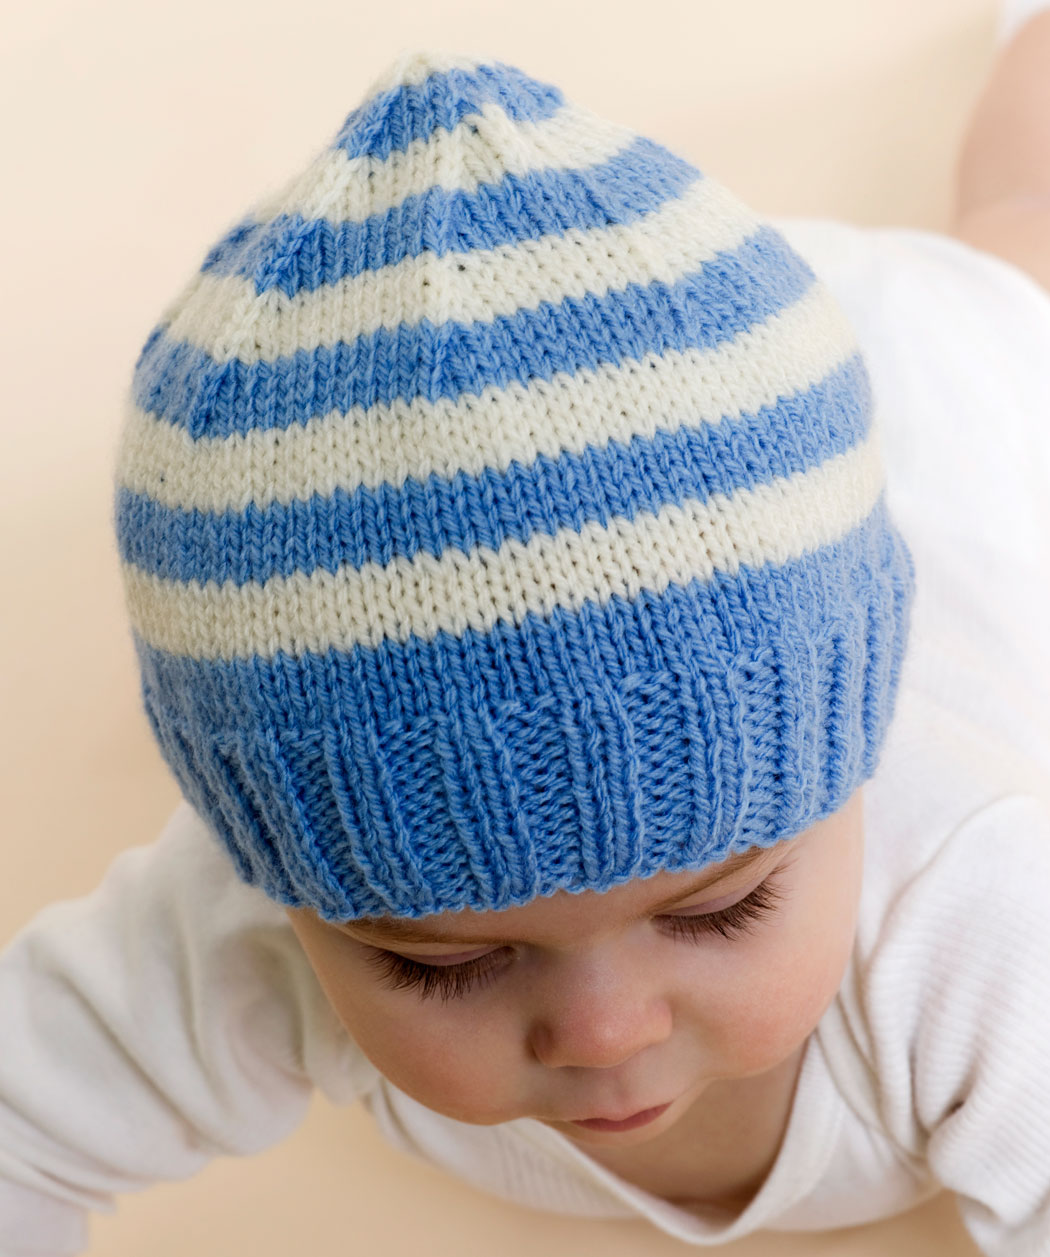 Knitting Patterns For Childrens Hats Free : Knitting Hats   Tag Hats